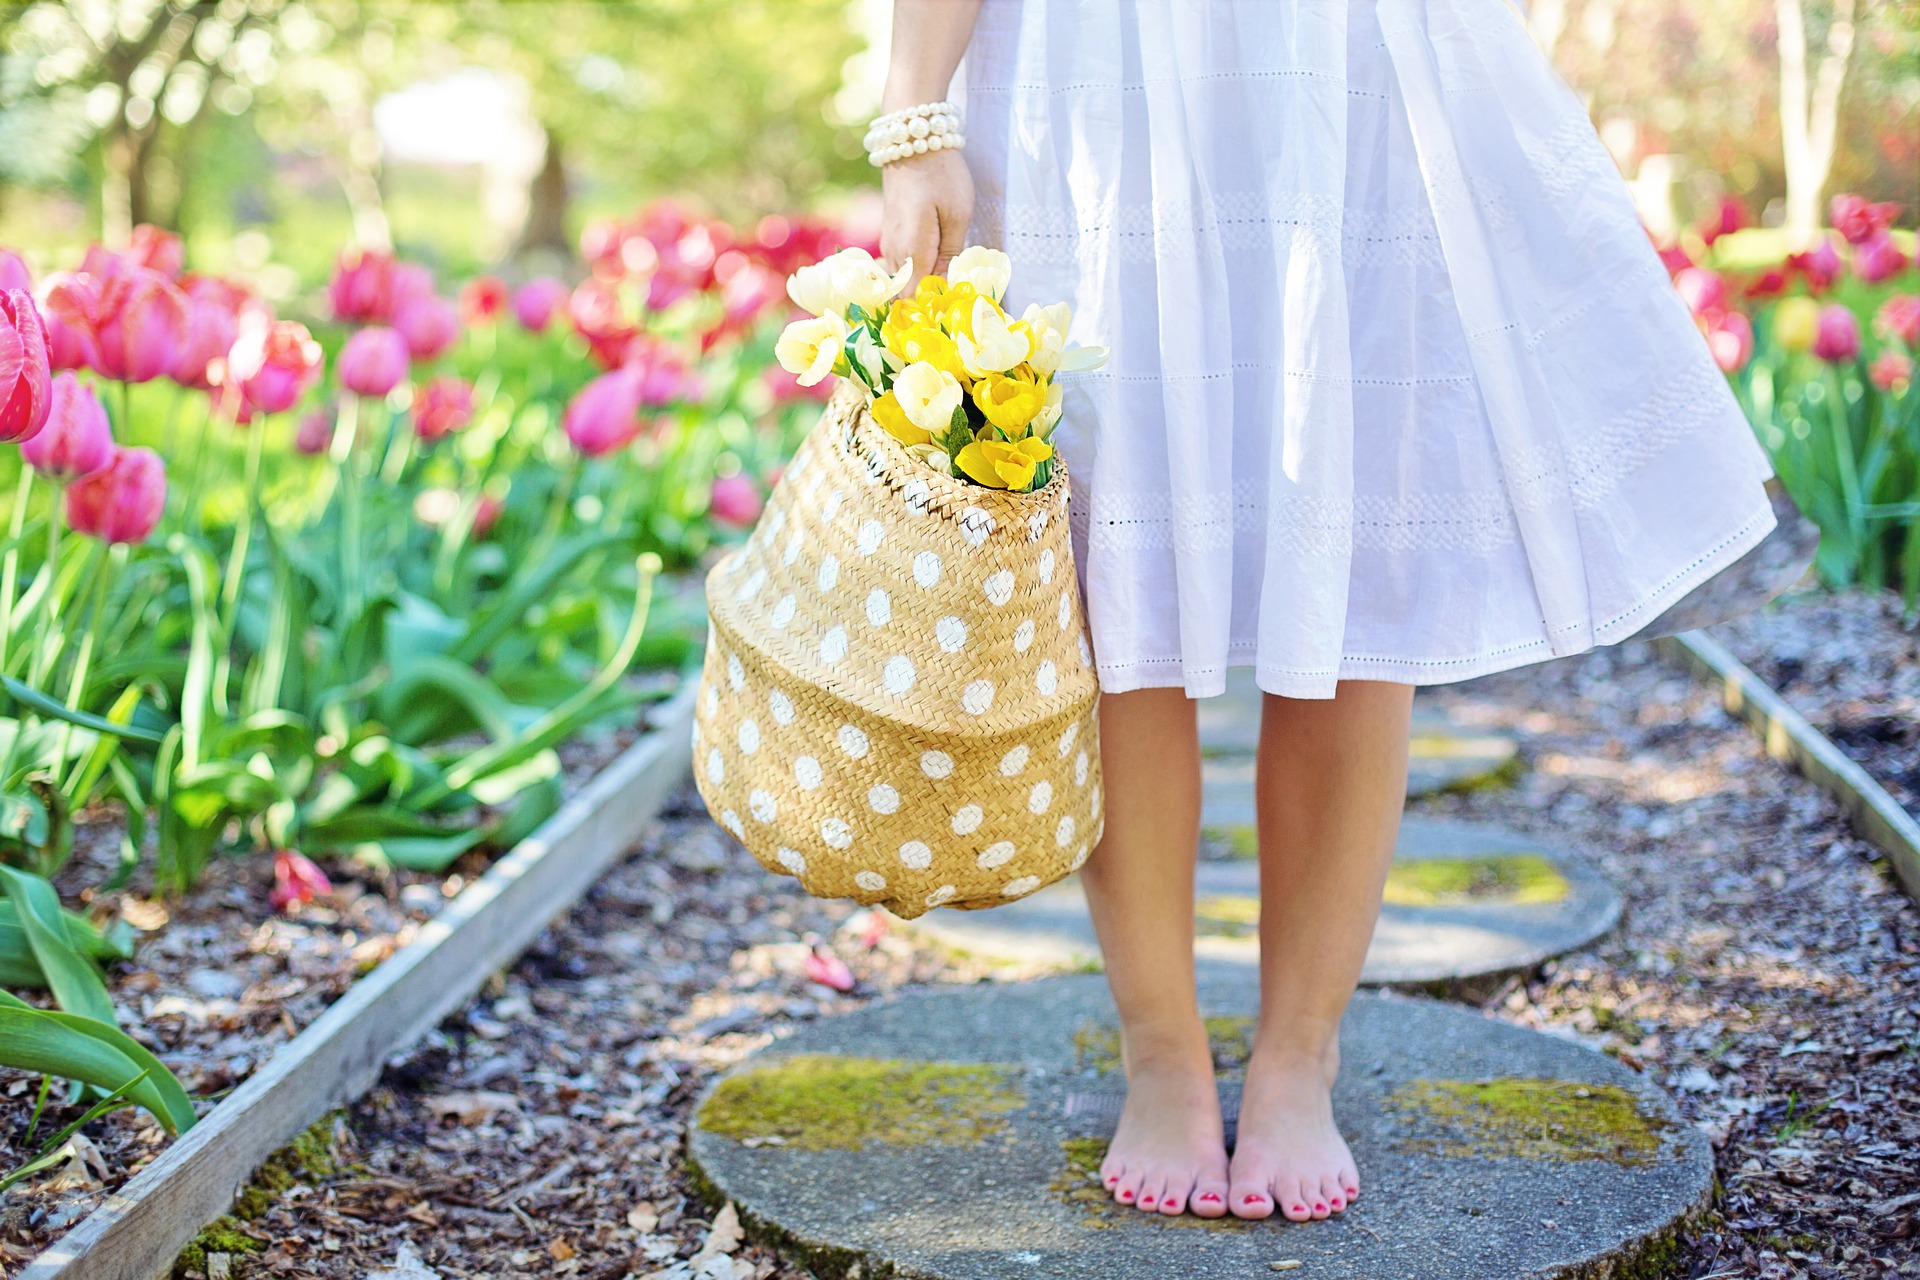 Getting your garden ready for a summer of entertaining